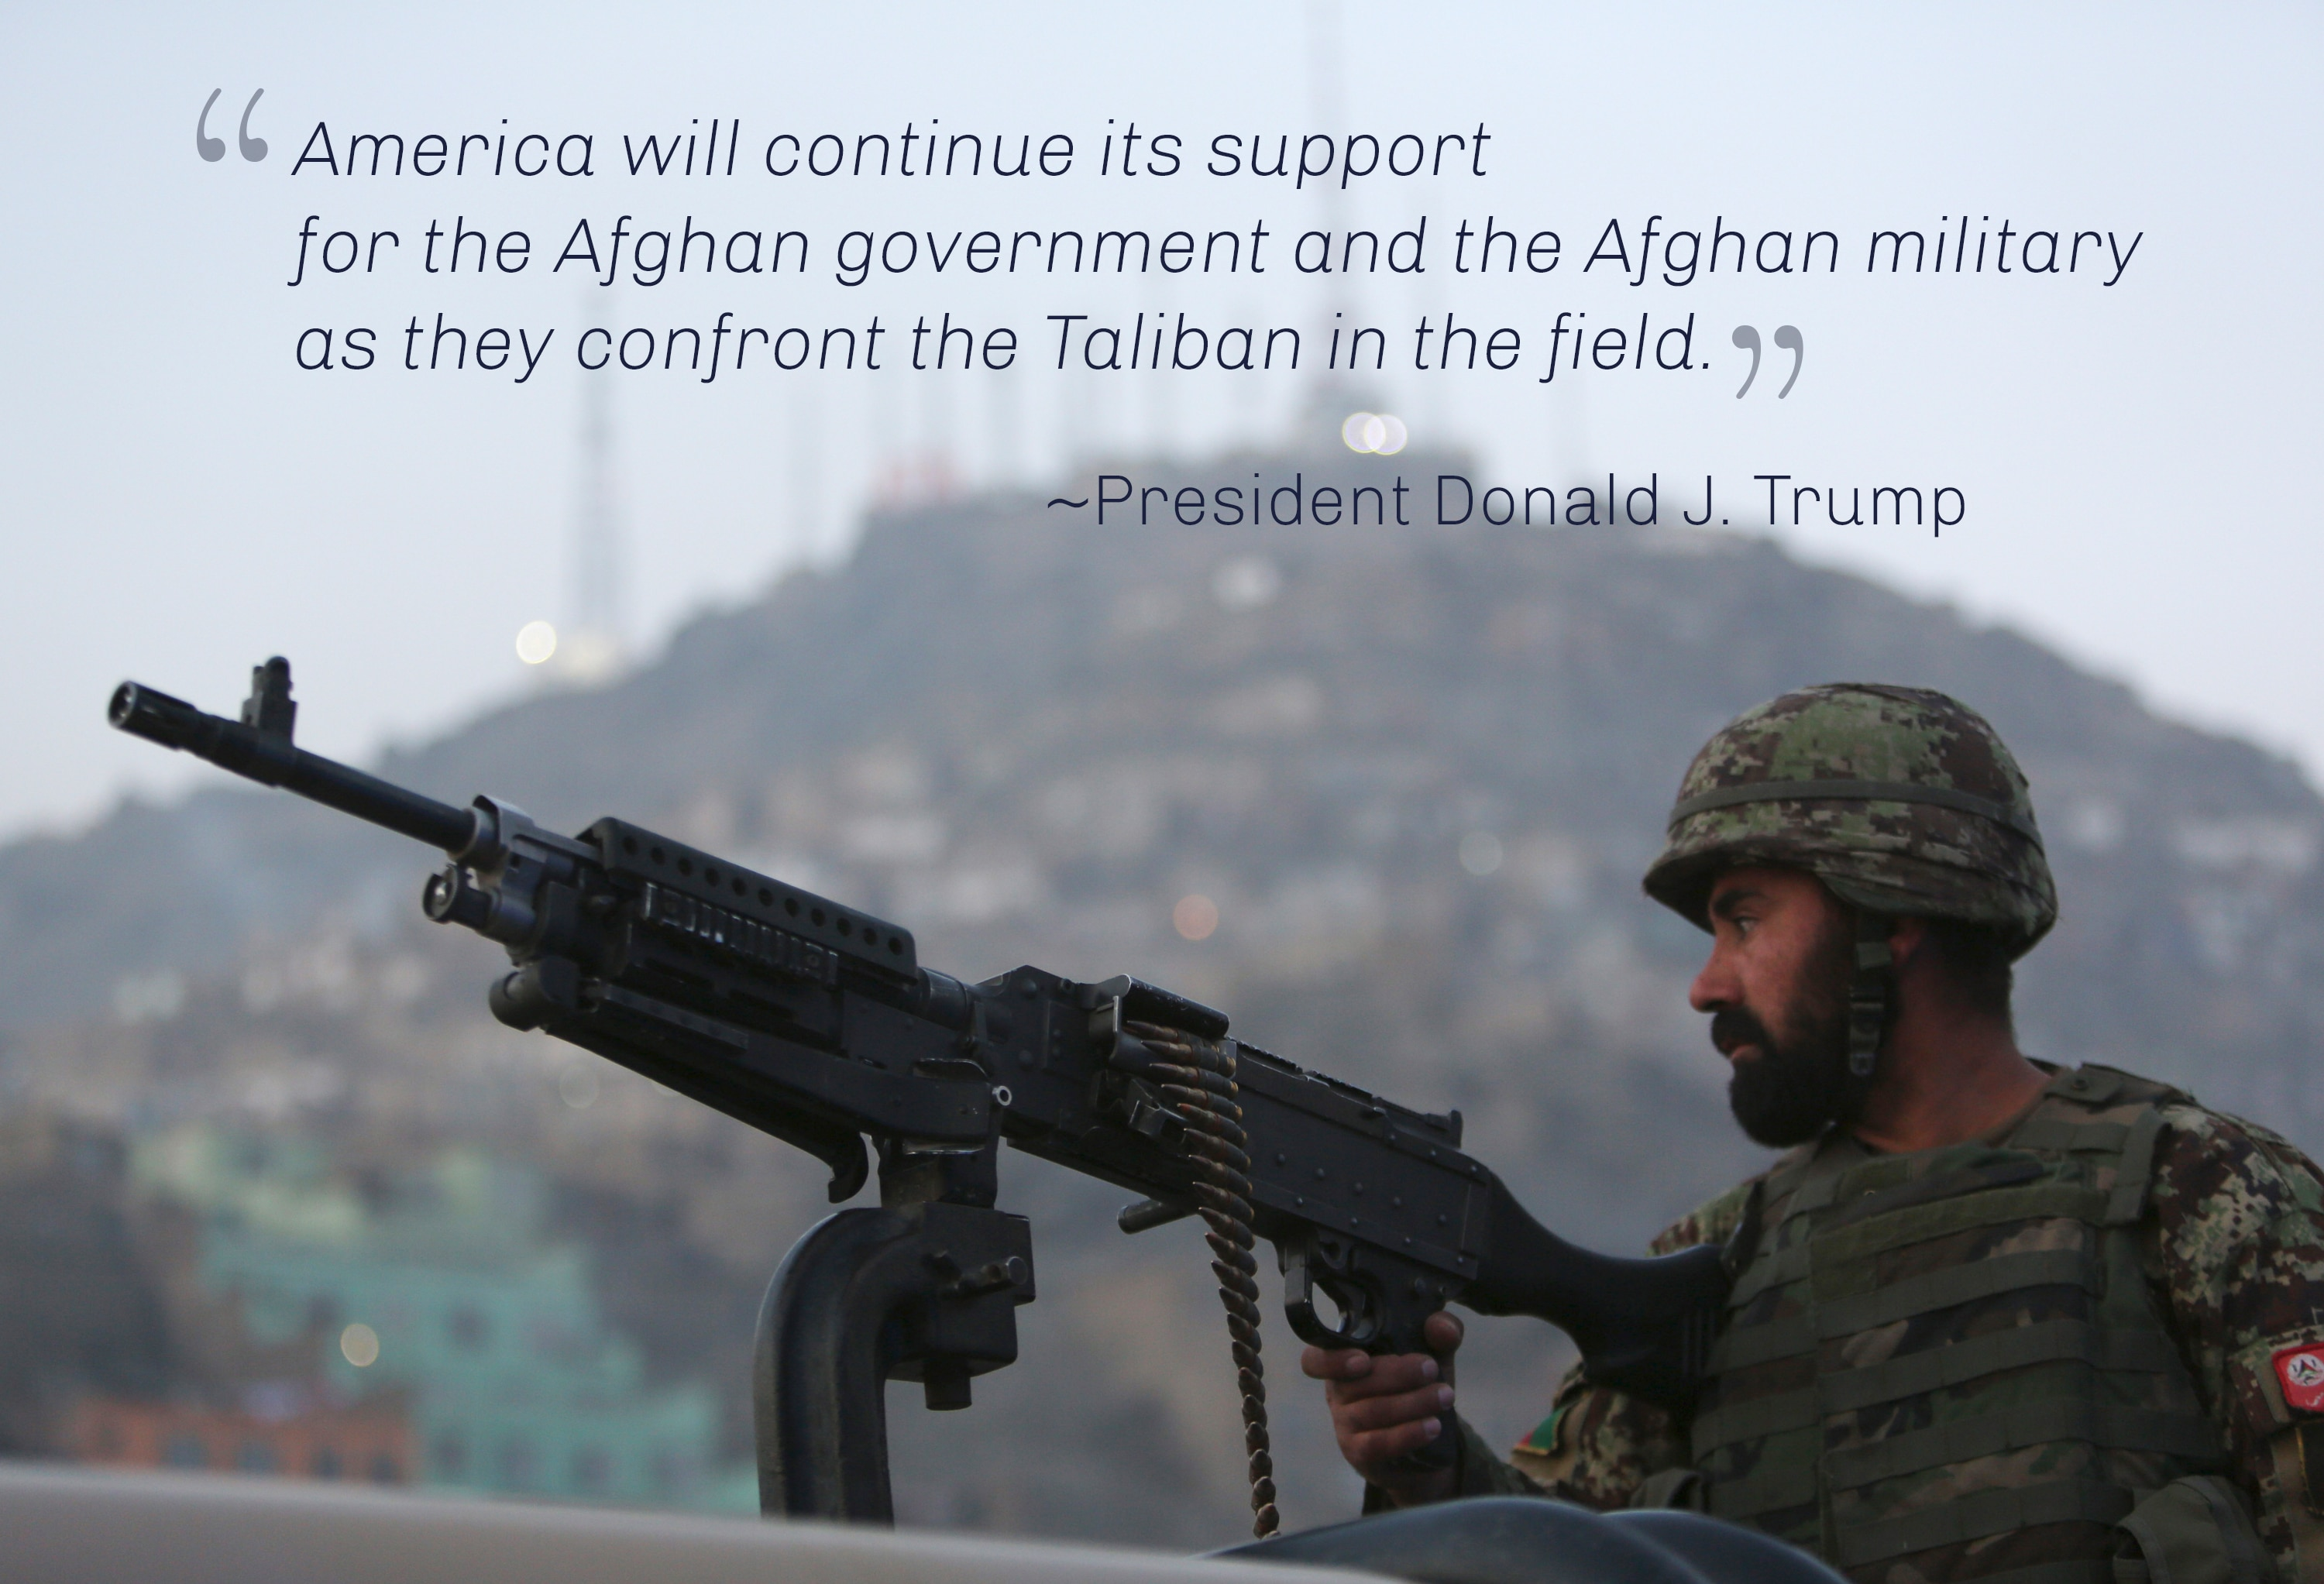 Man in uniform with gun with words by President Trump expressing U.S. support for Afghan government and military (© AP Images)